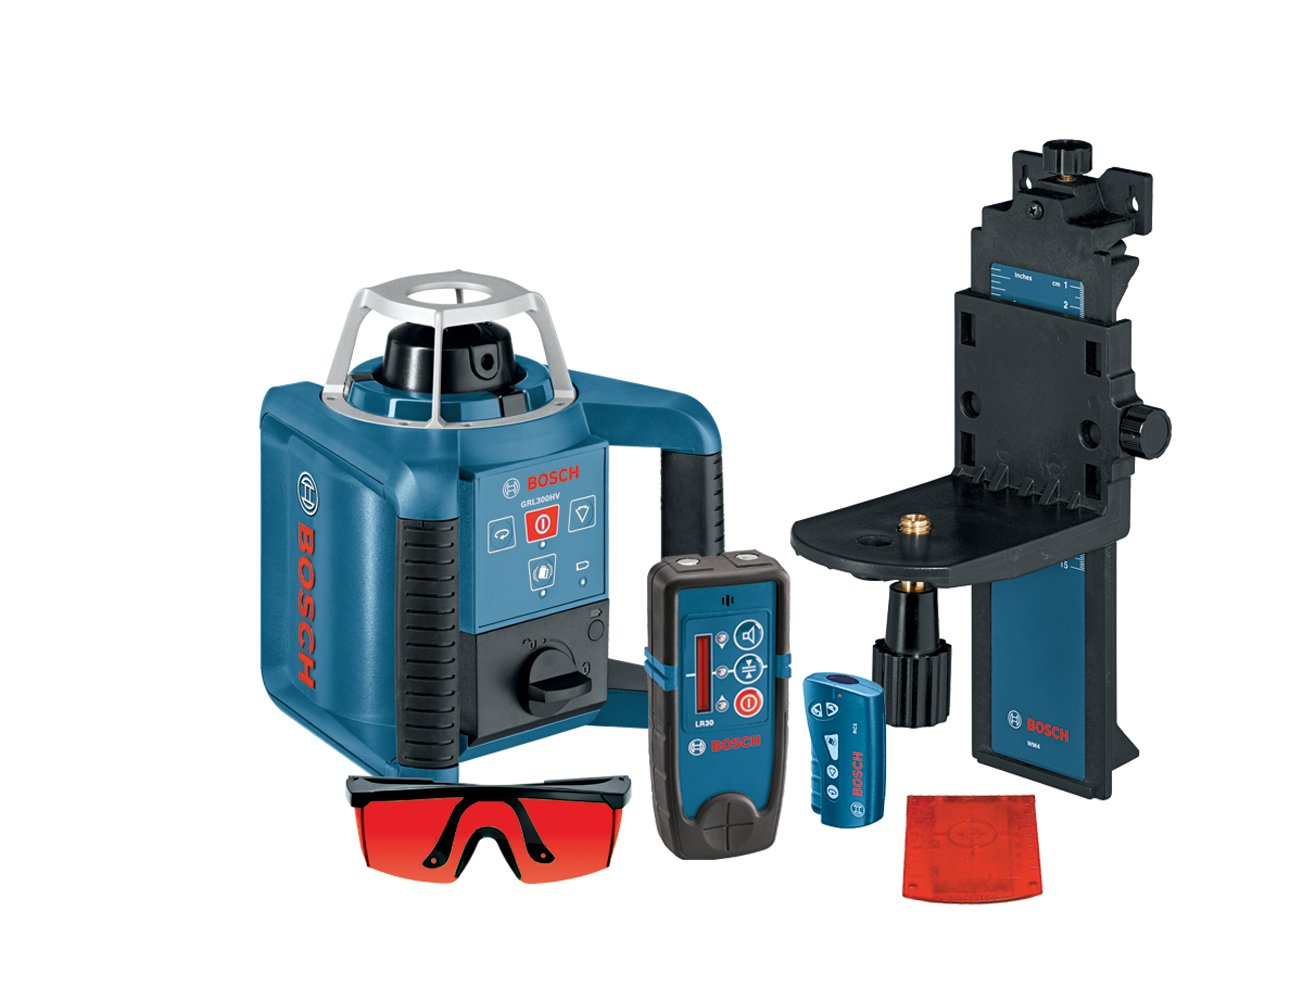 Bosch GRL300HVD Self-Leveling Rotary Laser with Layout Beam Interior Kit with Receiver, Remote and Wall Mount